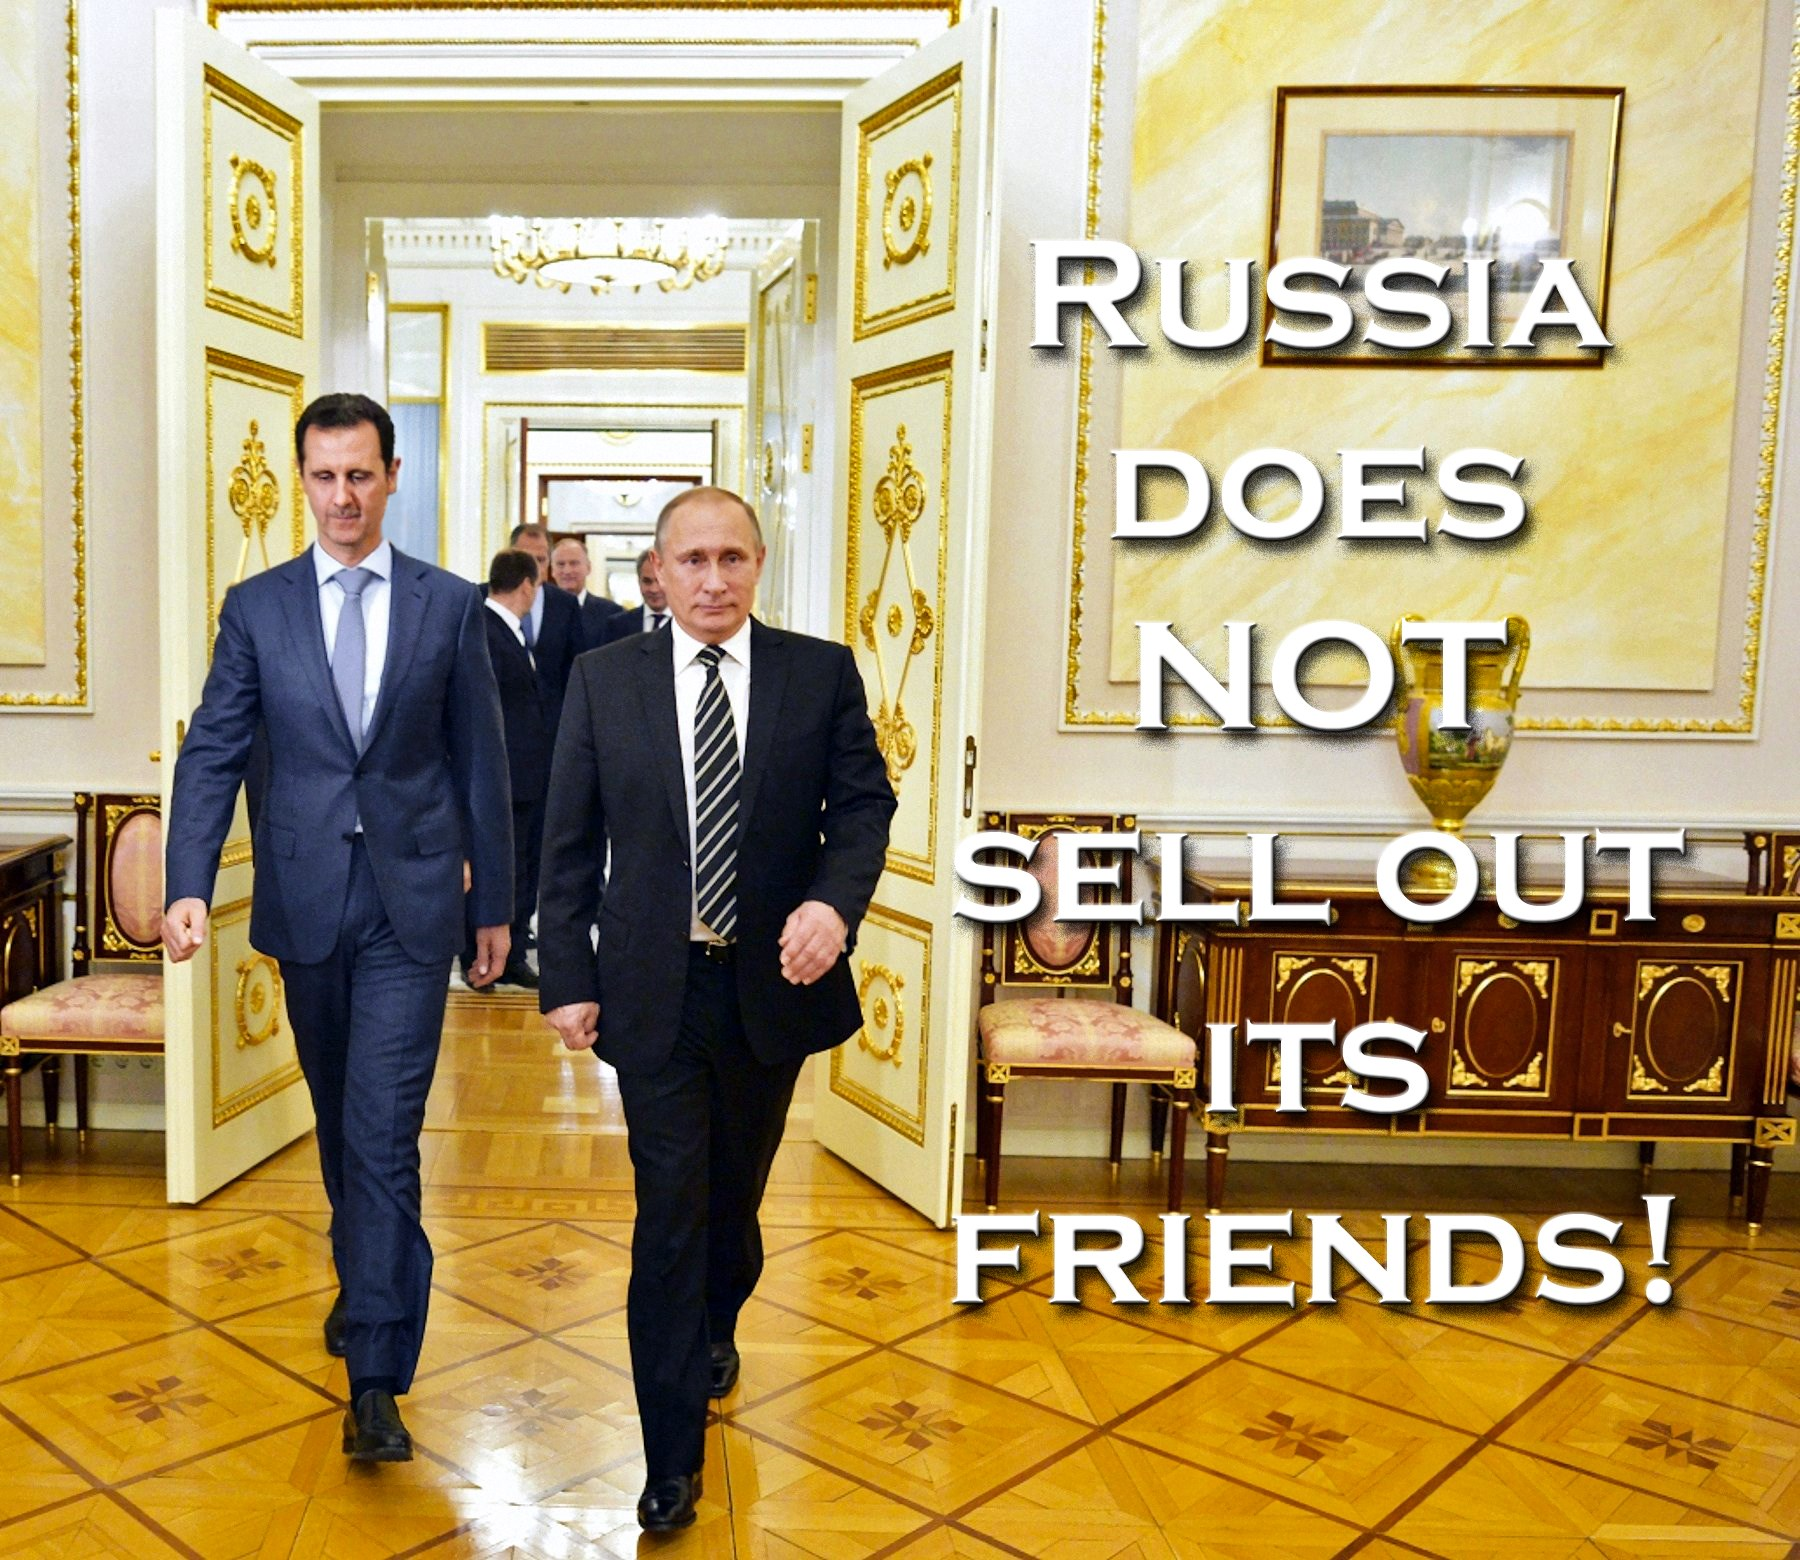 00 russia doesnt sell out its friends 271115.jpg